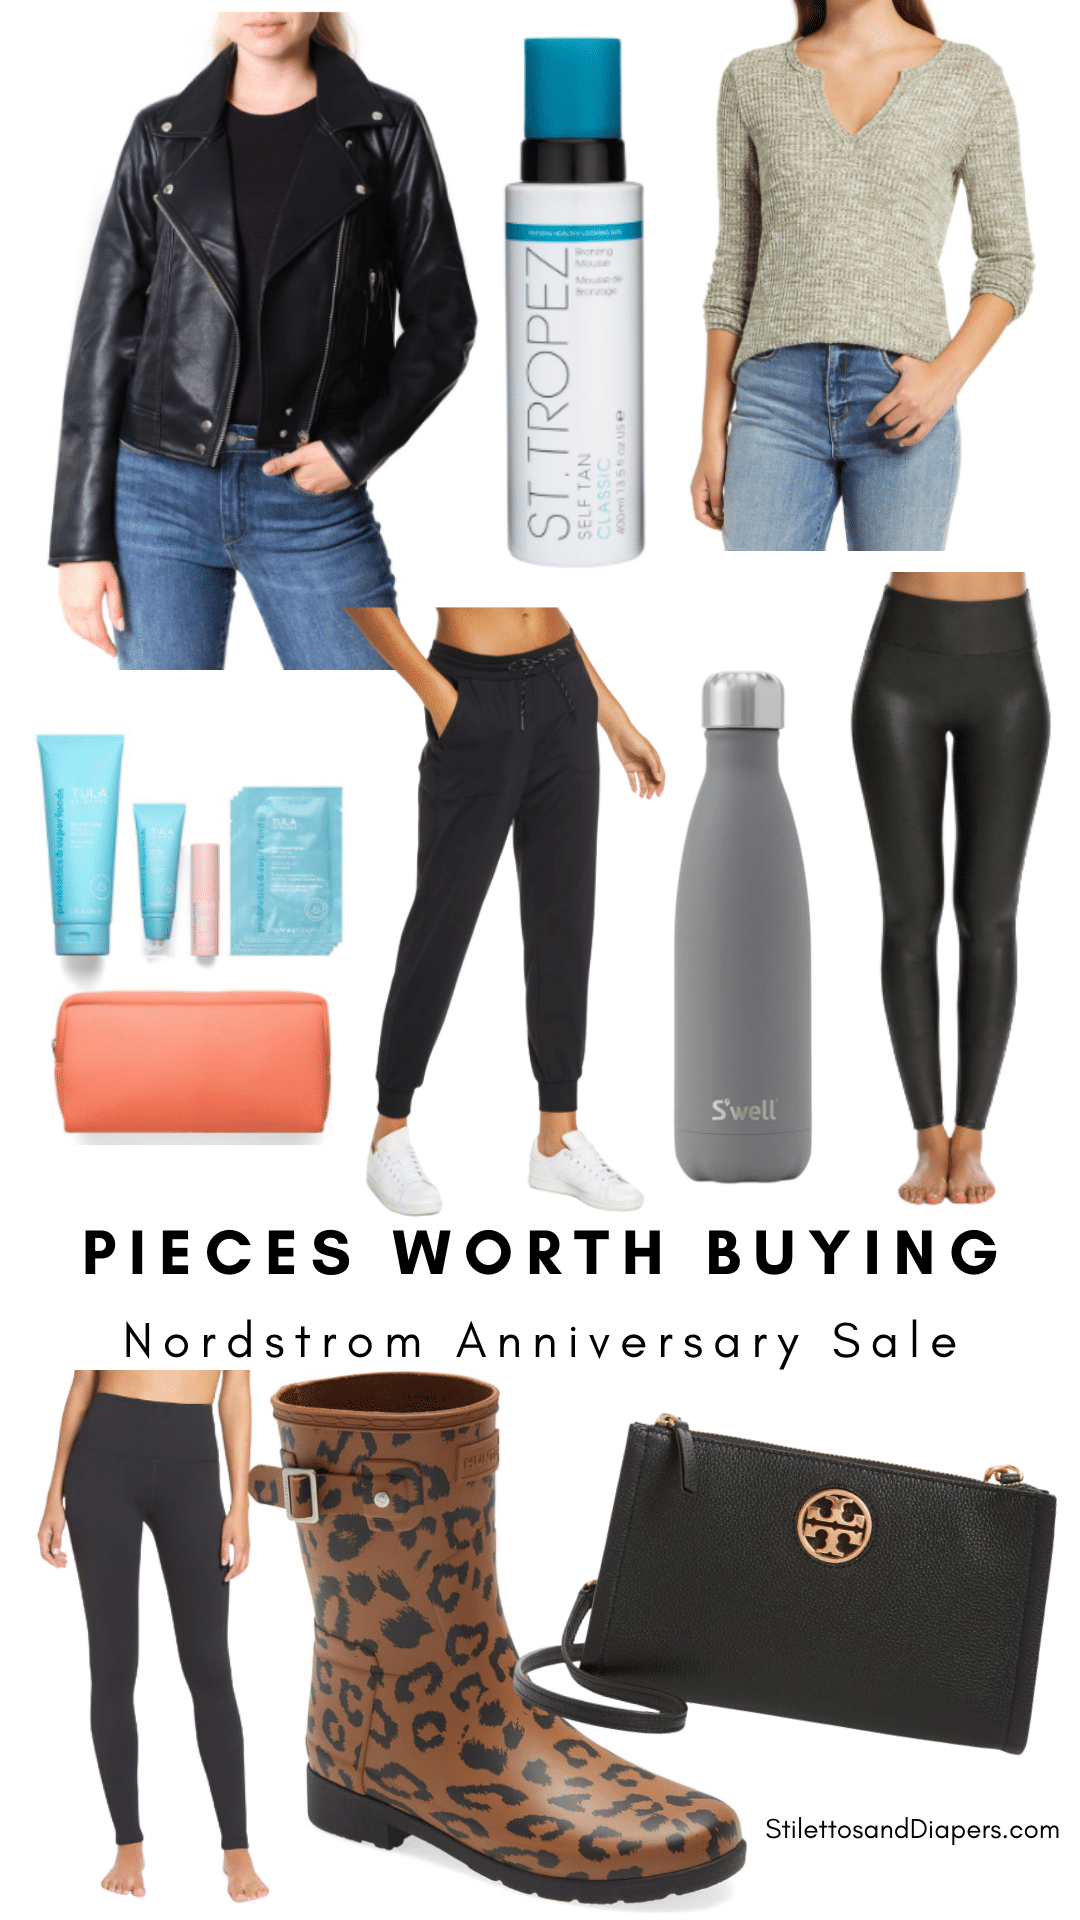 Nordstrom Anniversary Sale, Stilettos and Diapers